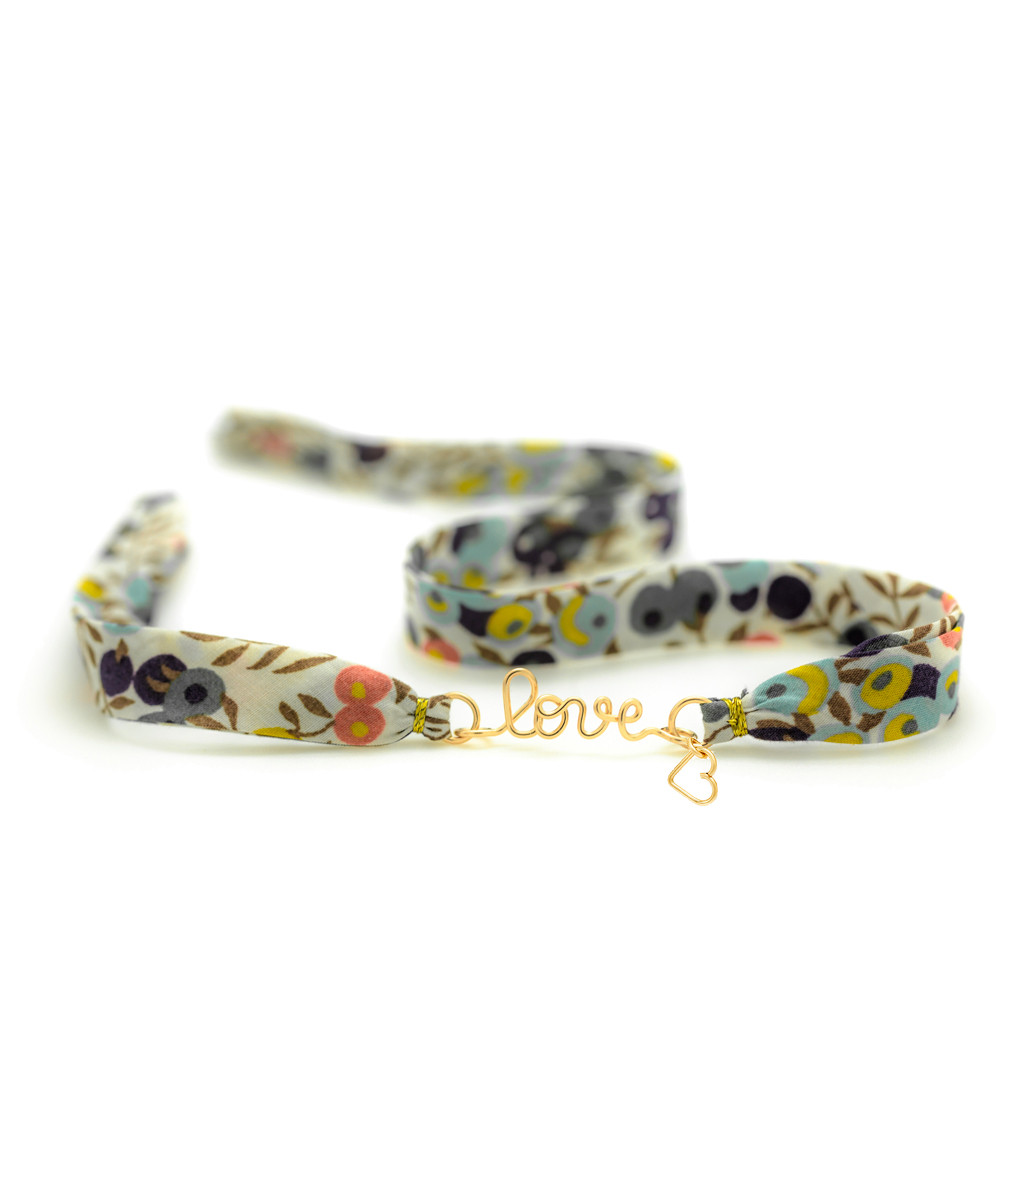 ATELIER PAULIN - Bracelet Double Liberty Love Charms Gold Filled 14K